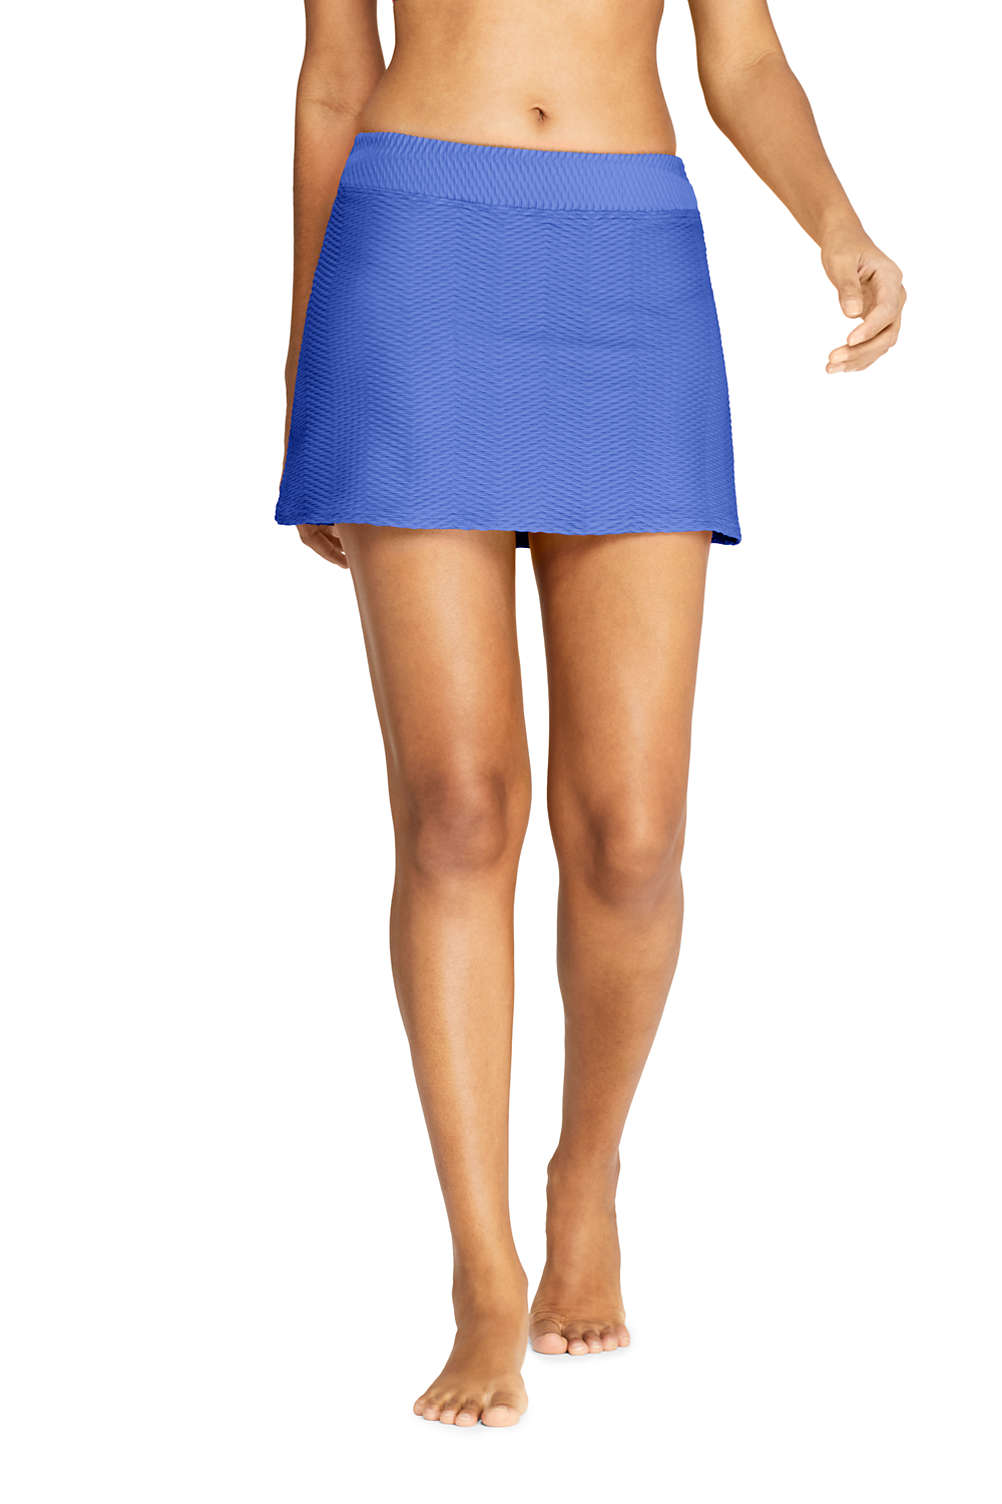 da8f800ef37 Women's Texture SwimMini Swim Skirt from Lands' End